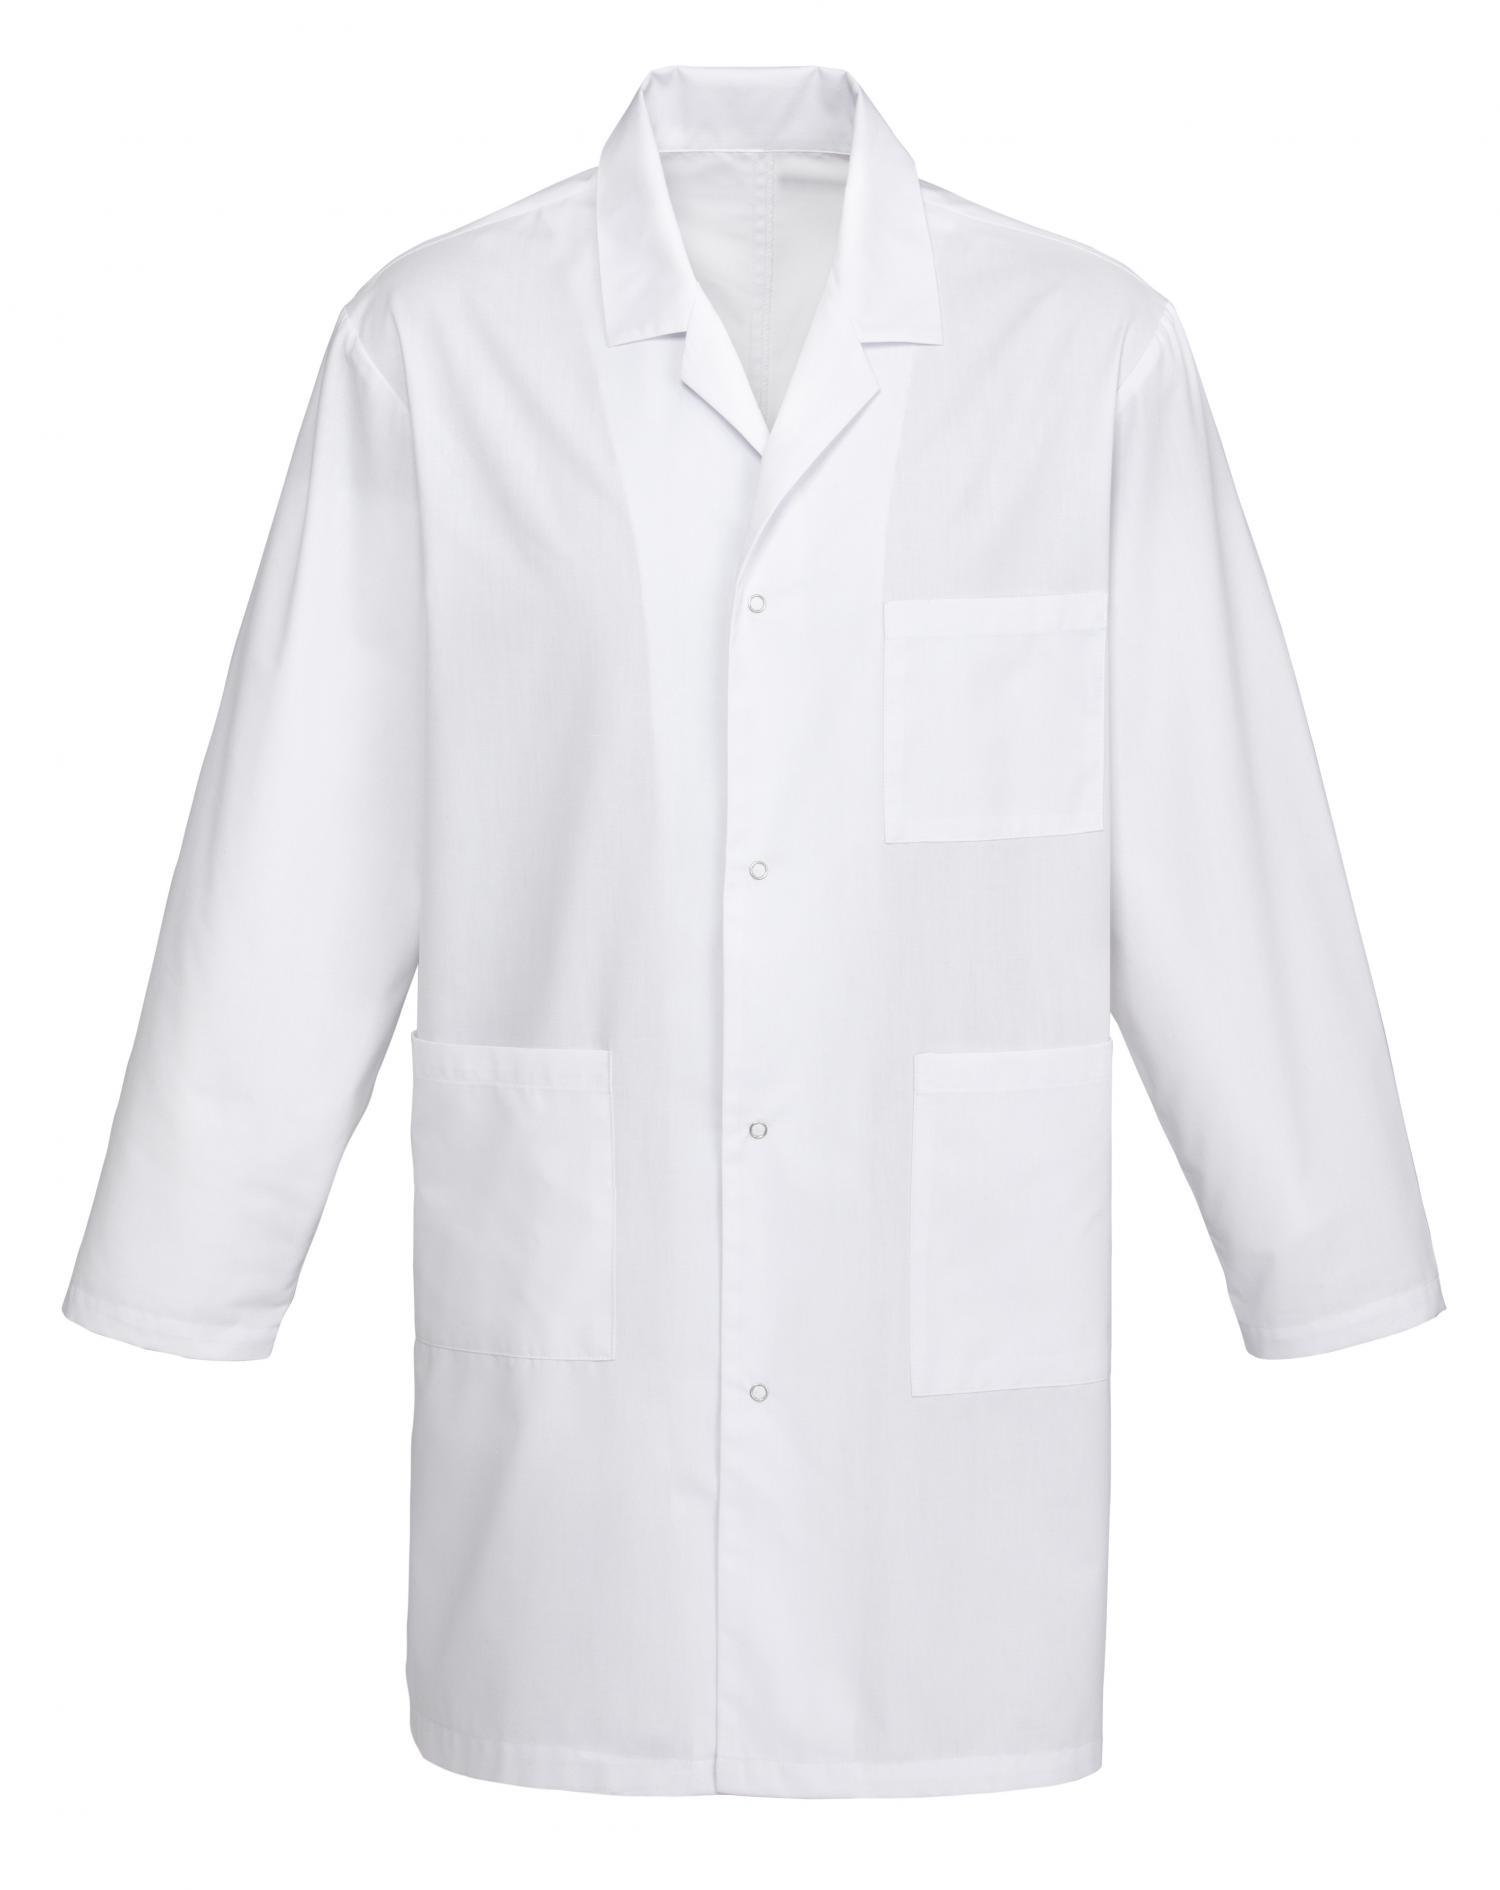 Where To Buy A White Lab Coat Fashion Women S Coat 2017